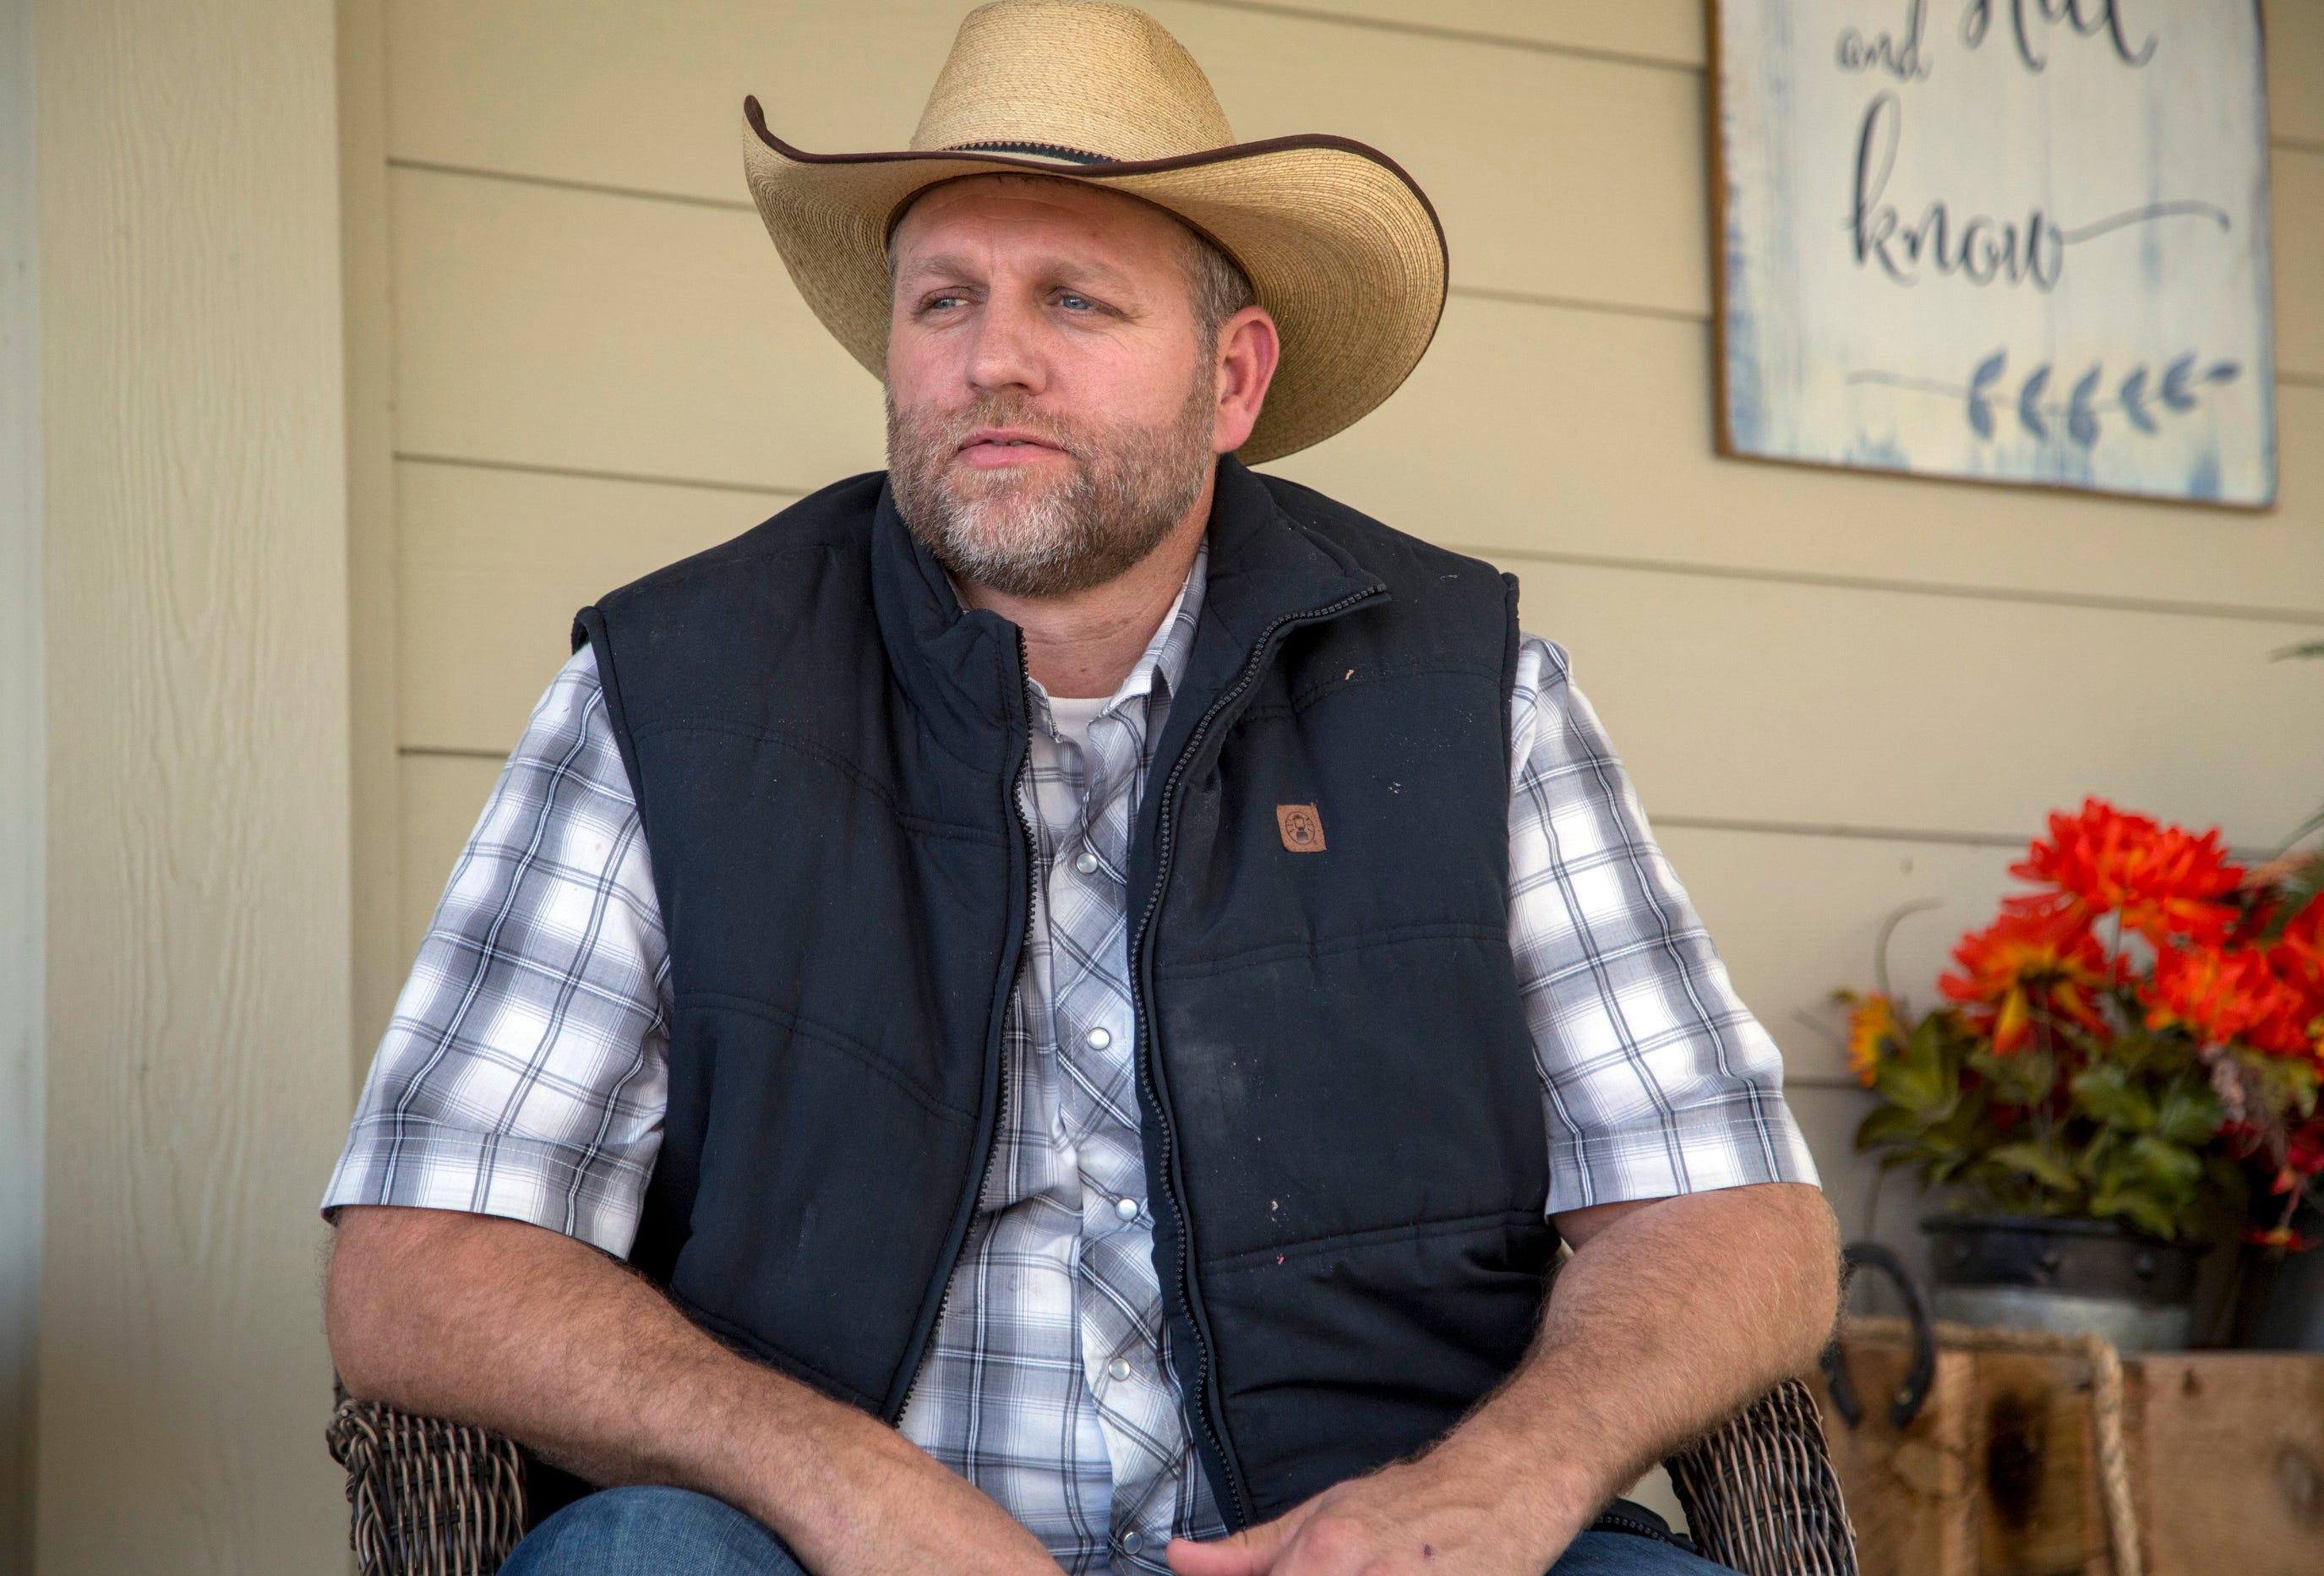 Anti-government activist Bundy running for governor of Idaho 2